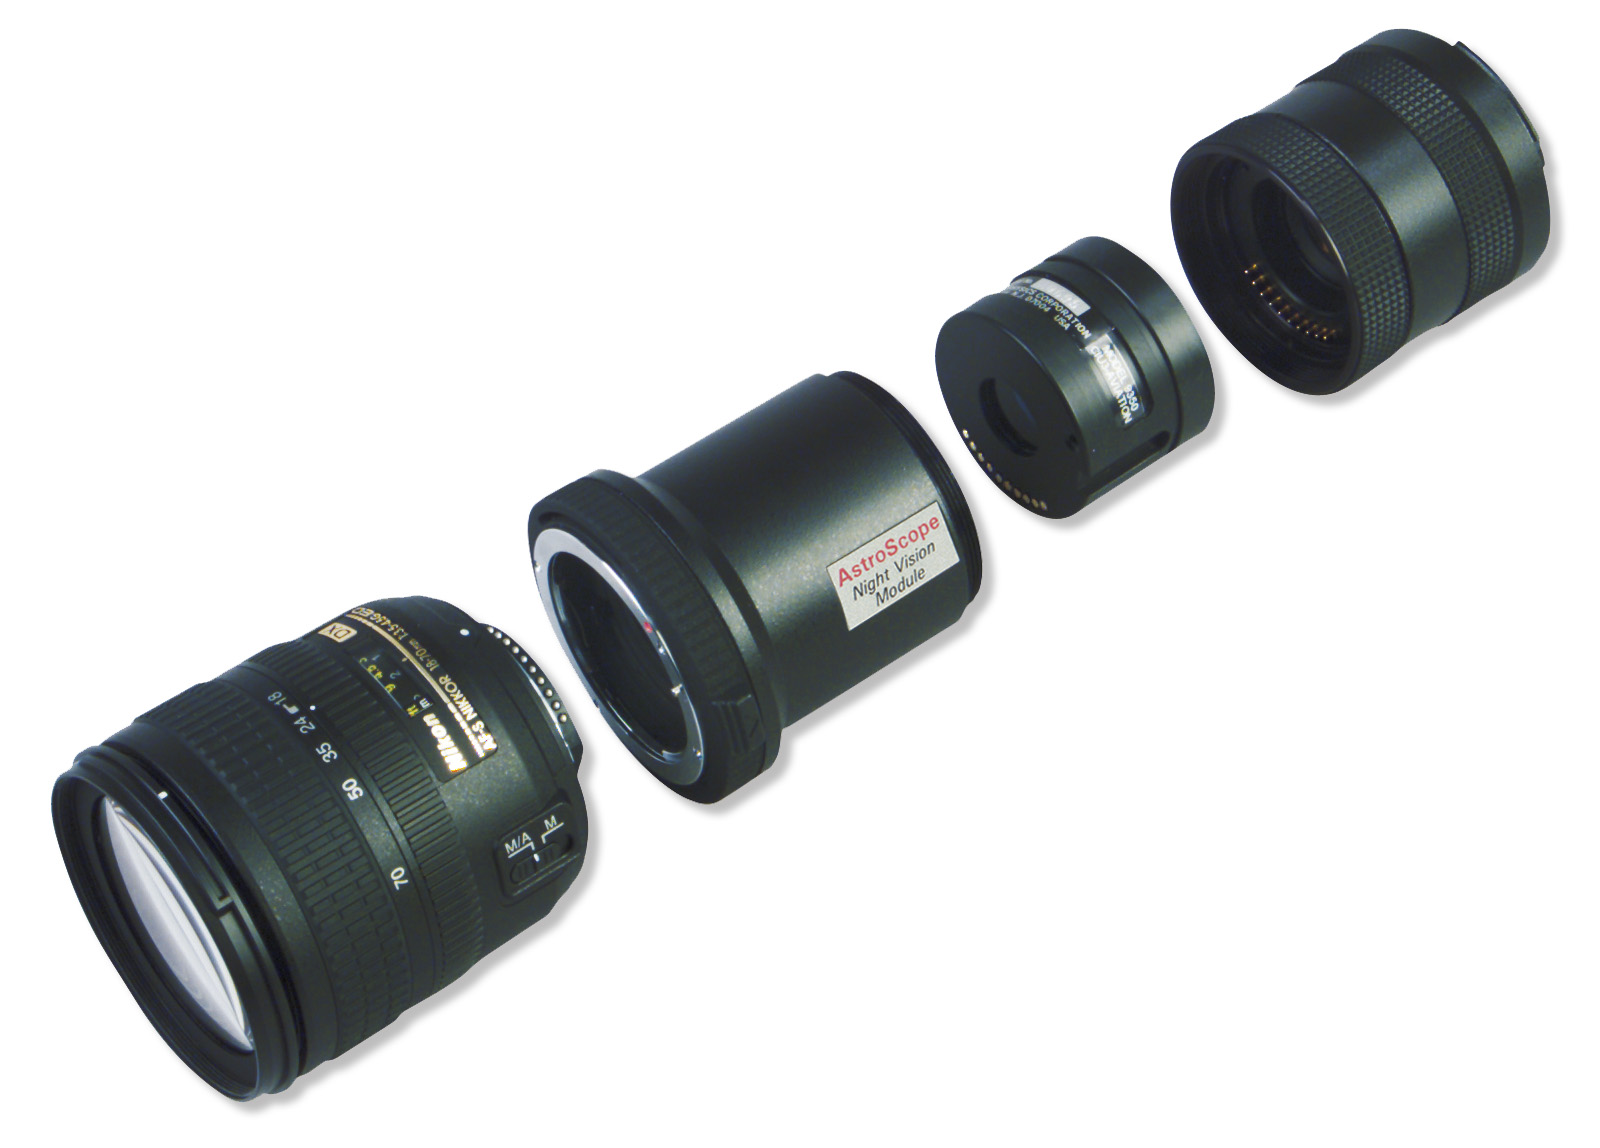 AstroScope 9350 Night Vision Modules - CIU Exploded